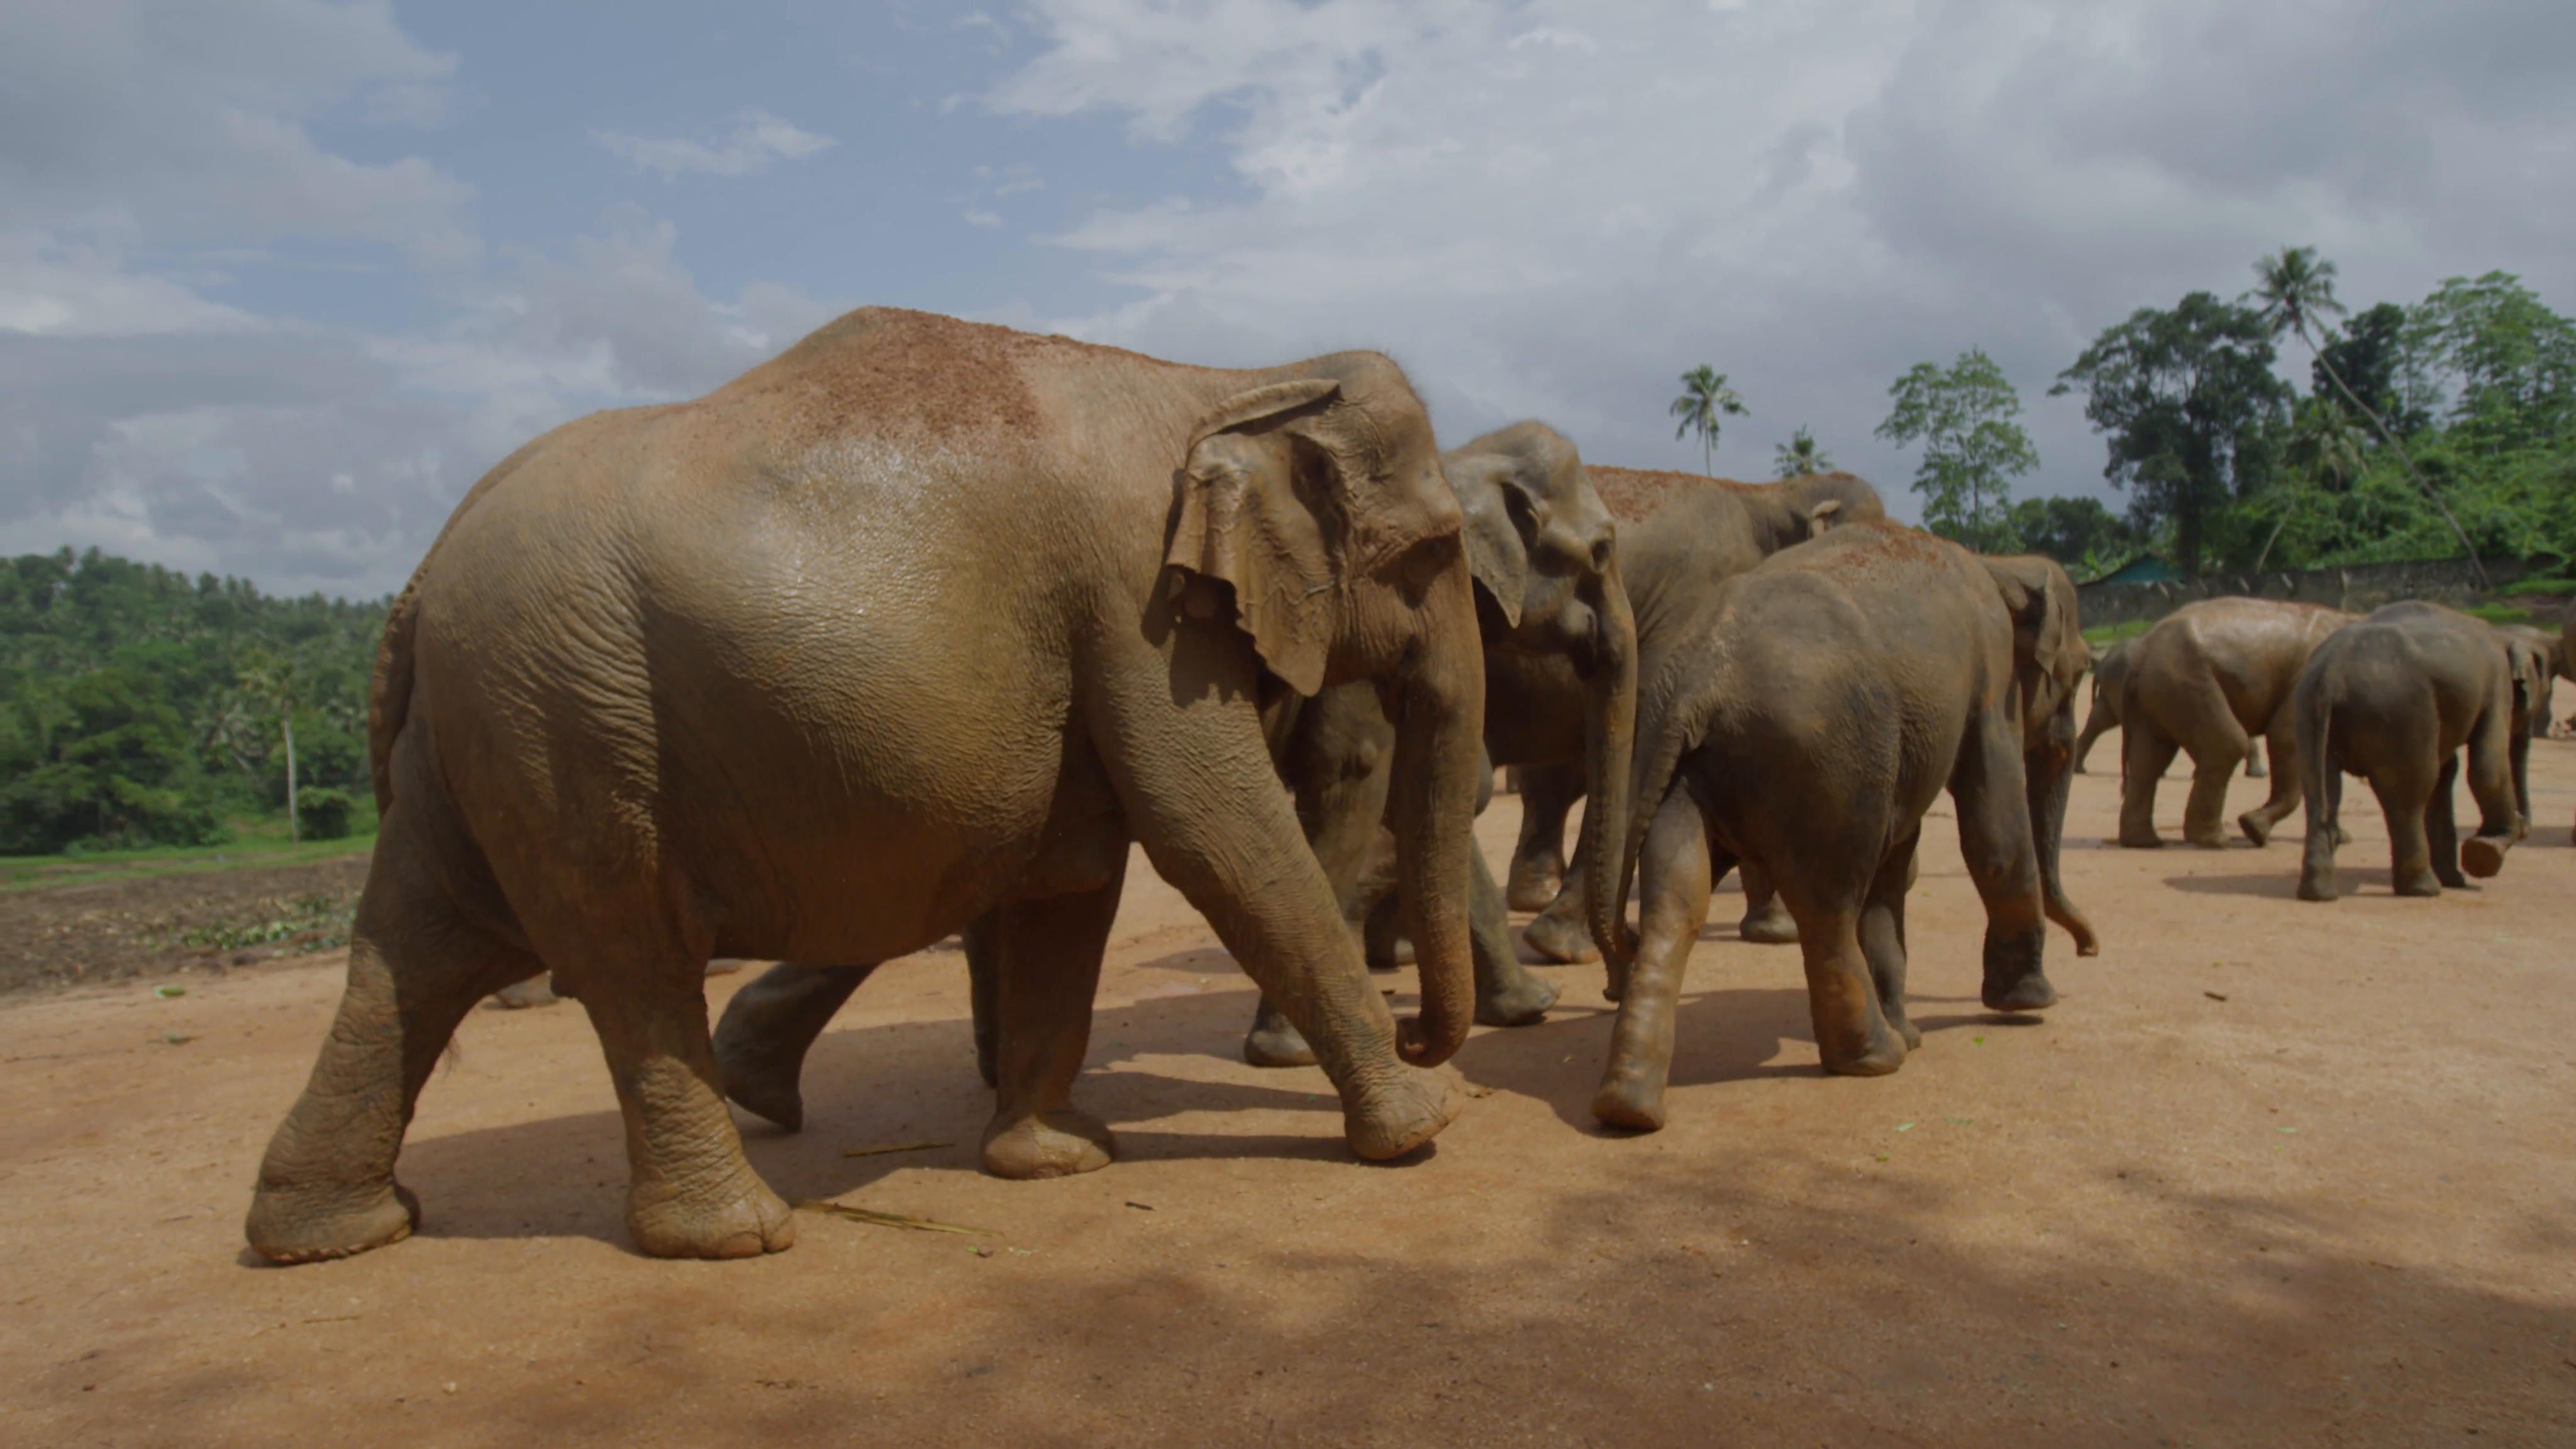 Group Of Elephants Png - Group of elephants walking in slow motion in nature Stock Video Footage -  Storyblocks Video